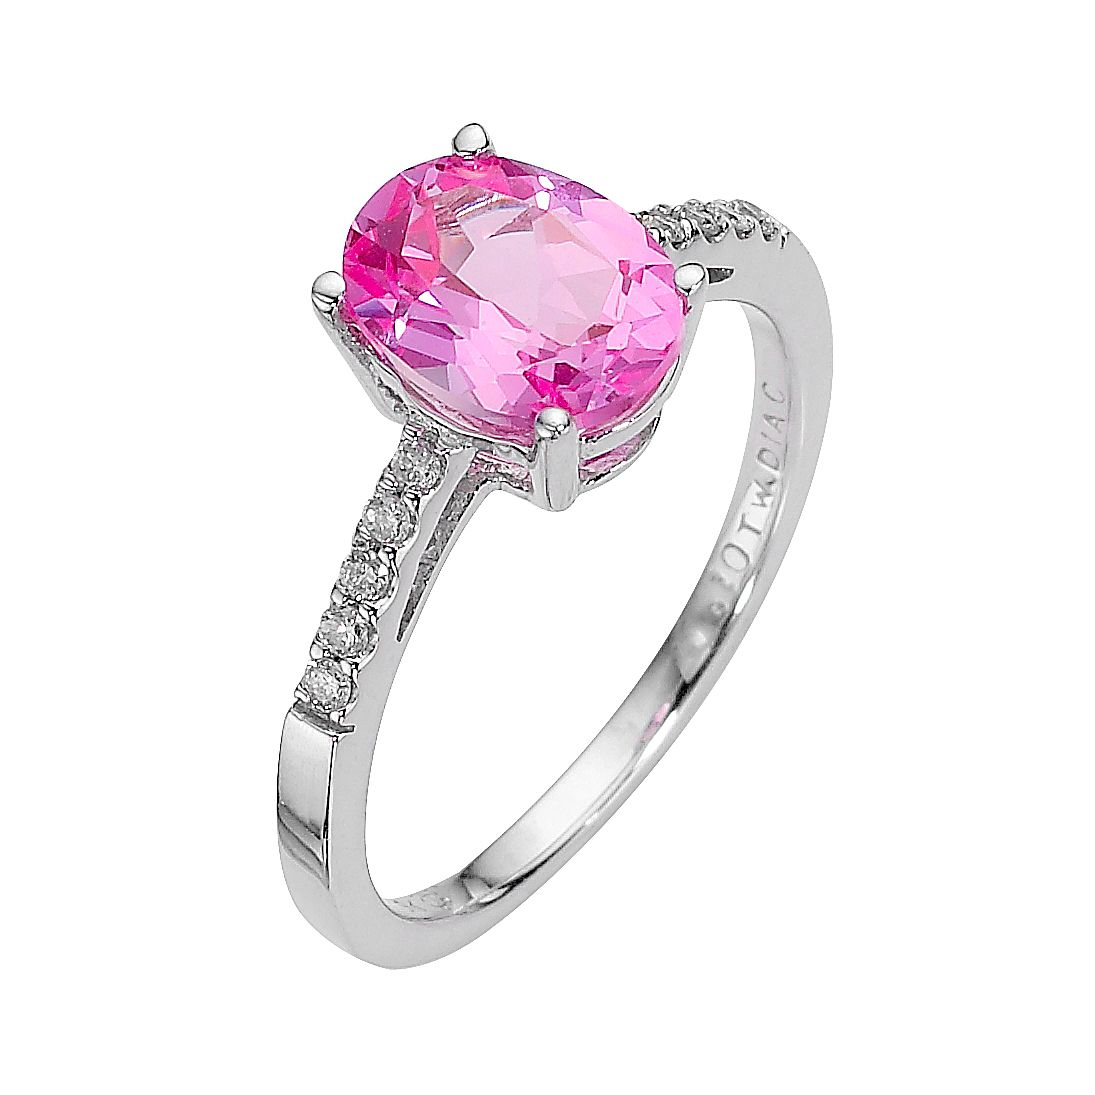 ben sapphire bridge ring jeweler jewelry diamond pink